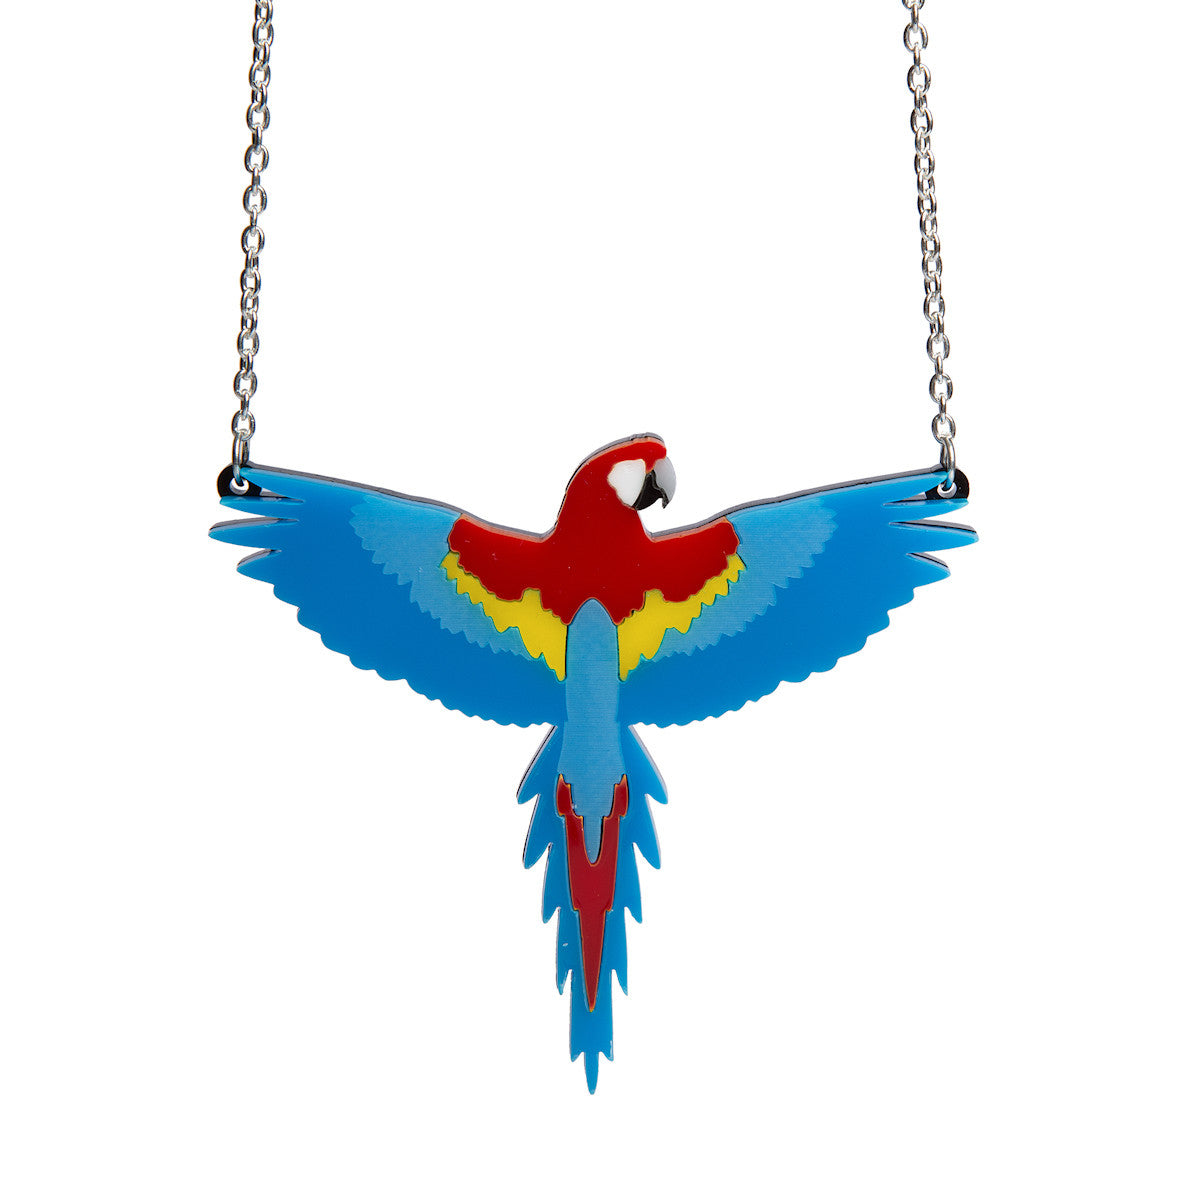 Sugar & Vice Scarlet Macaw Parrot Necklace